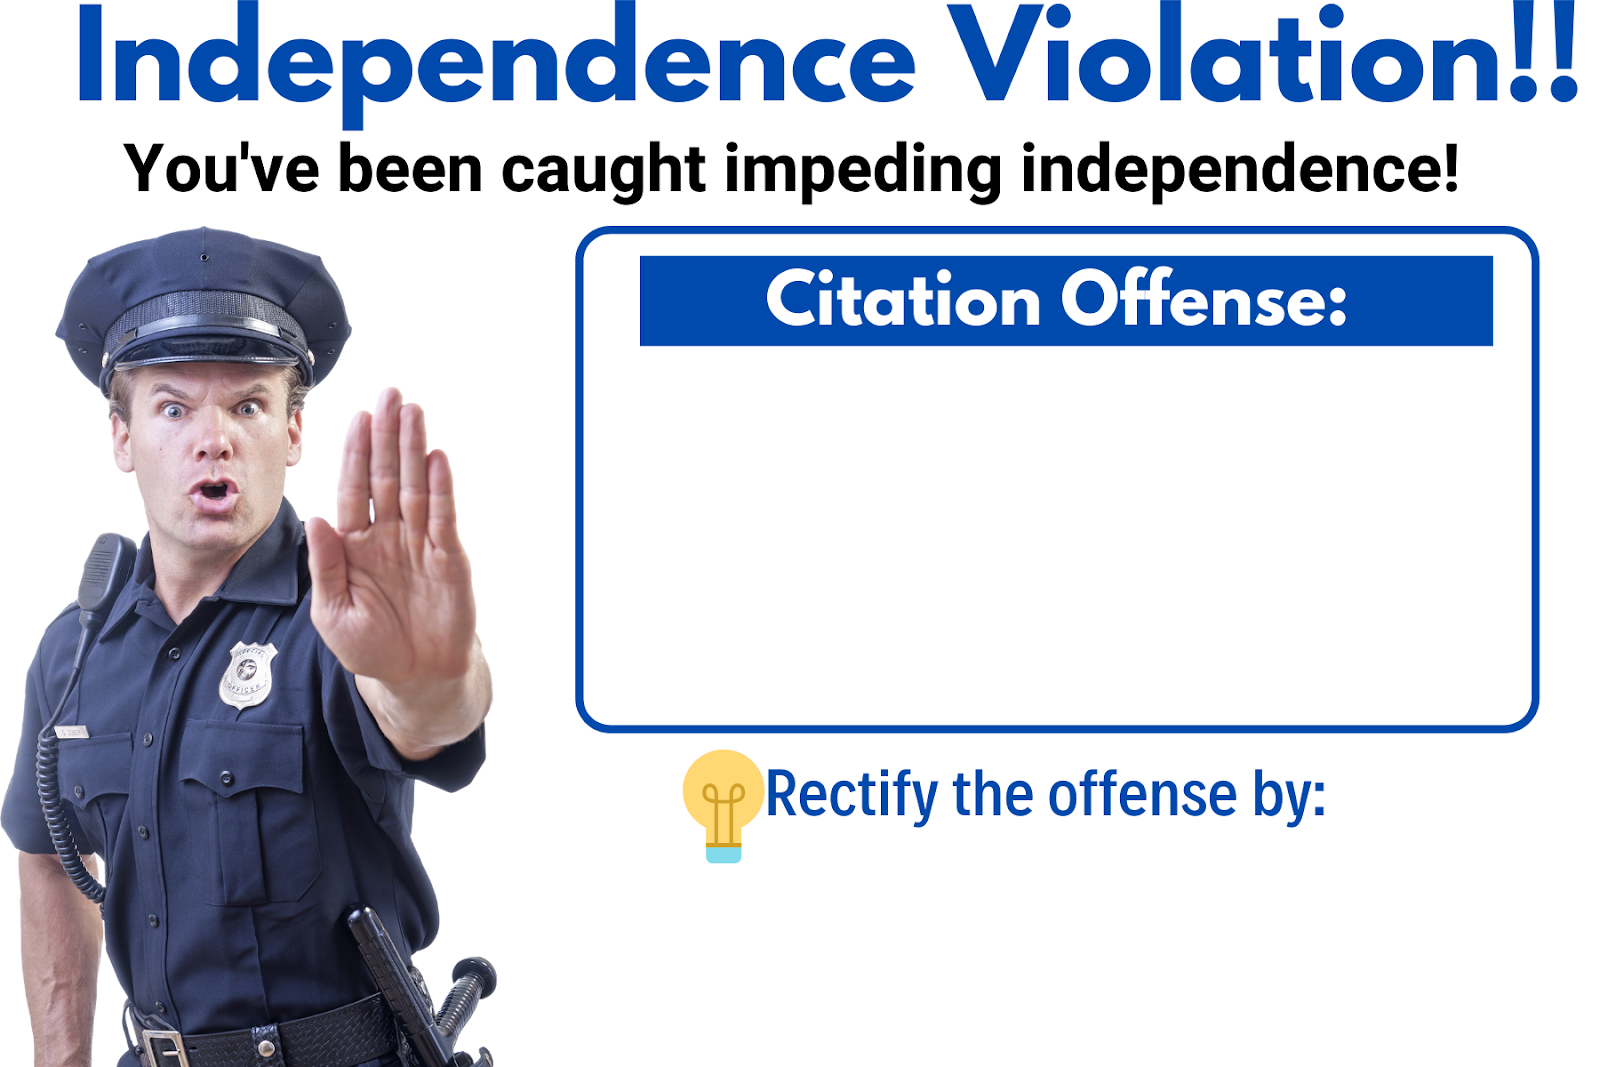 an image of the independence violation with the funny male police officer holding his hand out to stop